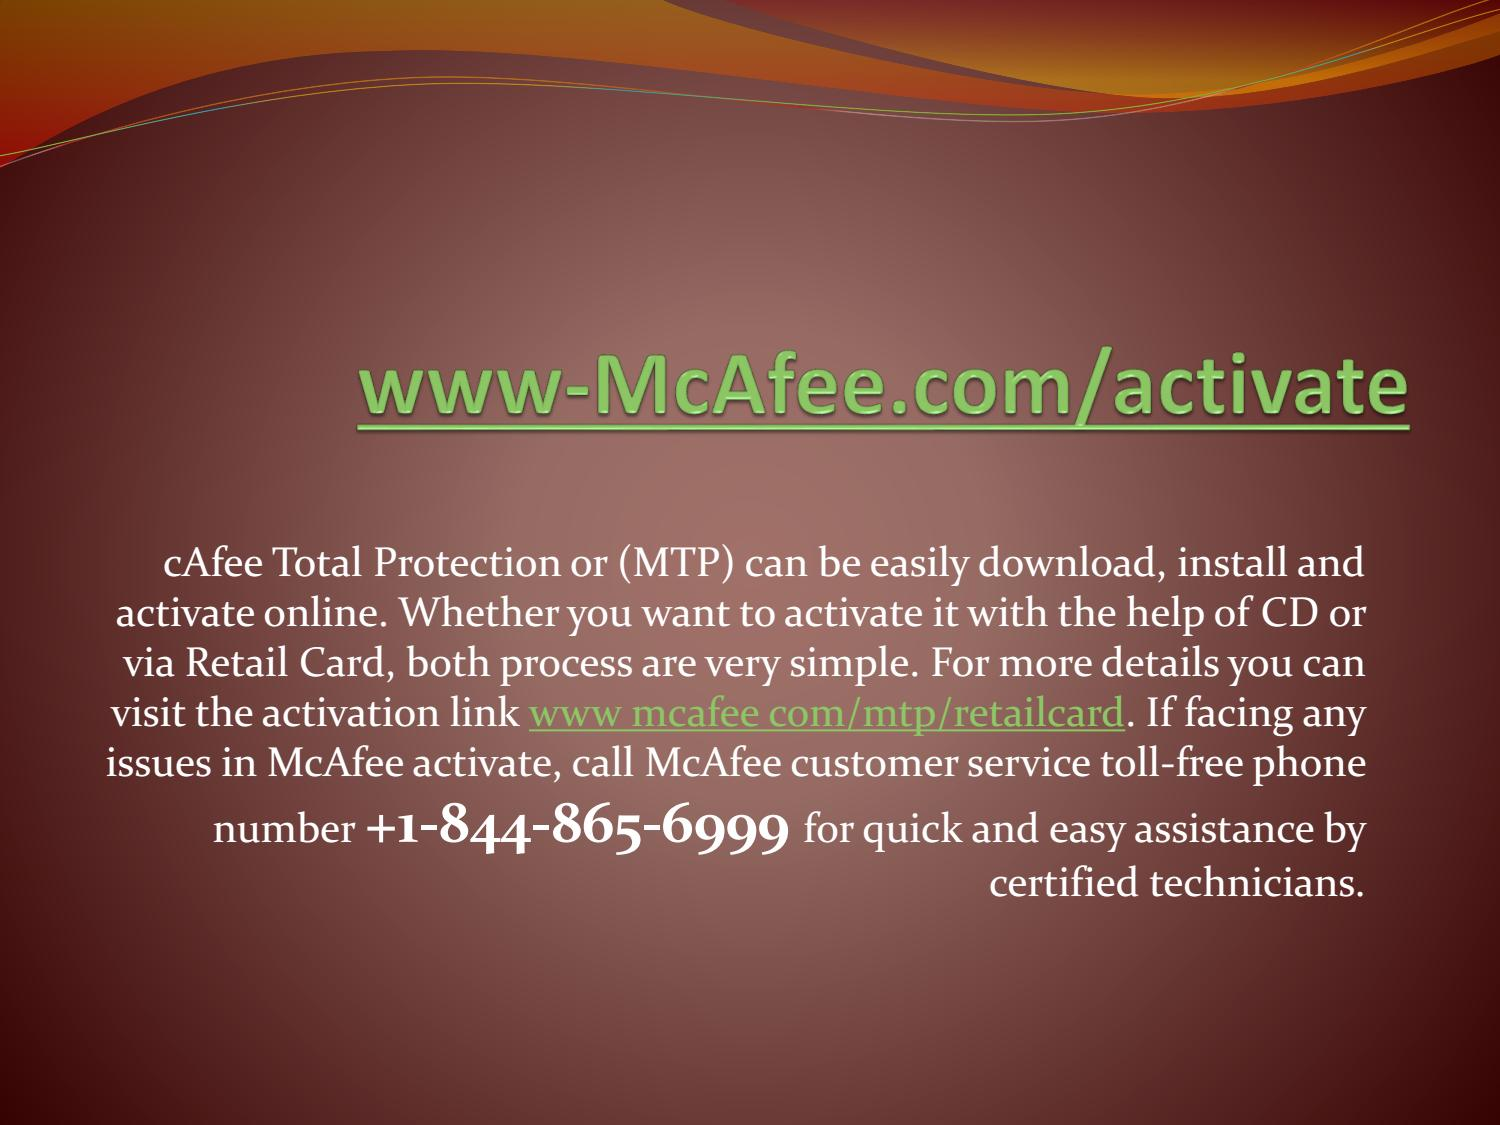 www mcafee com/activate| Mcfee Activate Product key - Enter